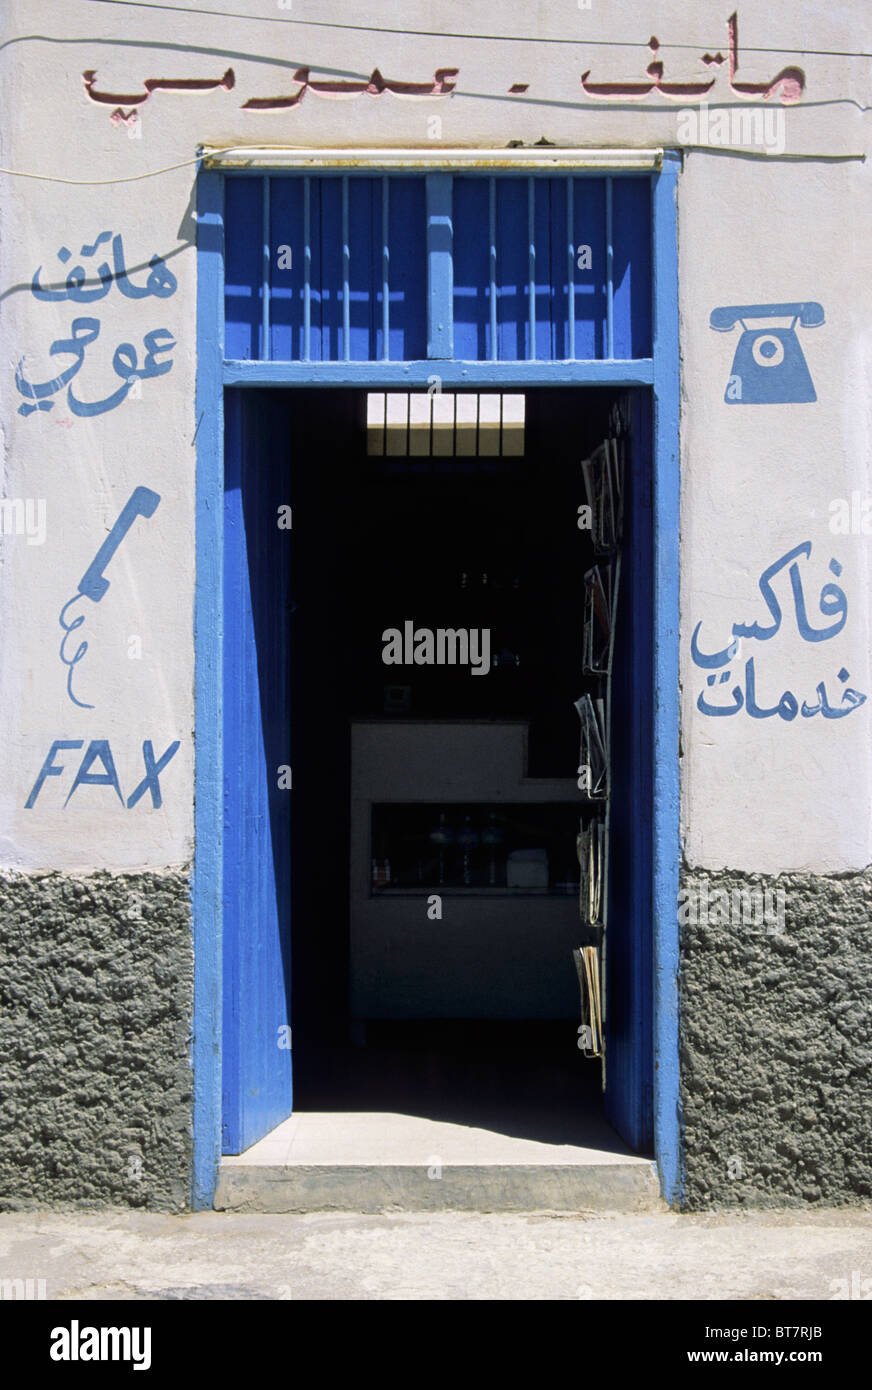 fax and telephone shop - Gabes - Tunisia - Stock Image